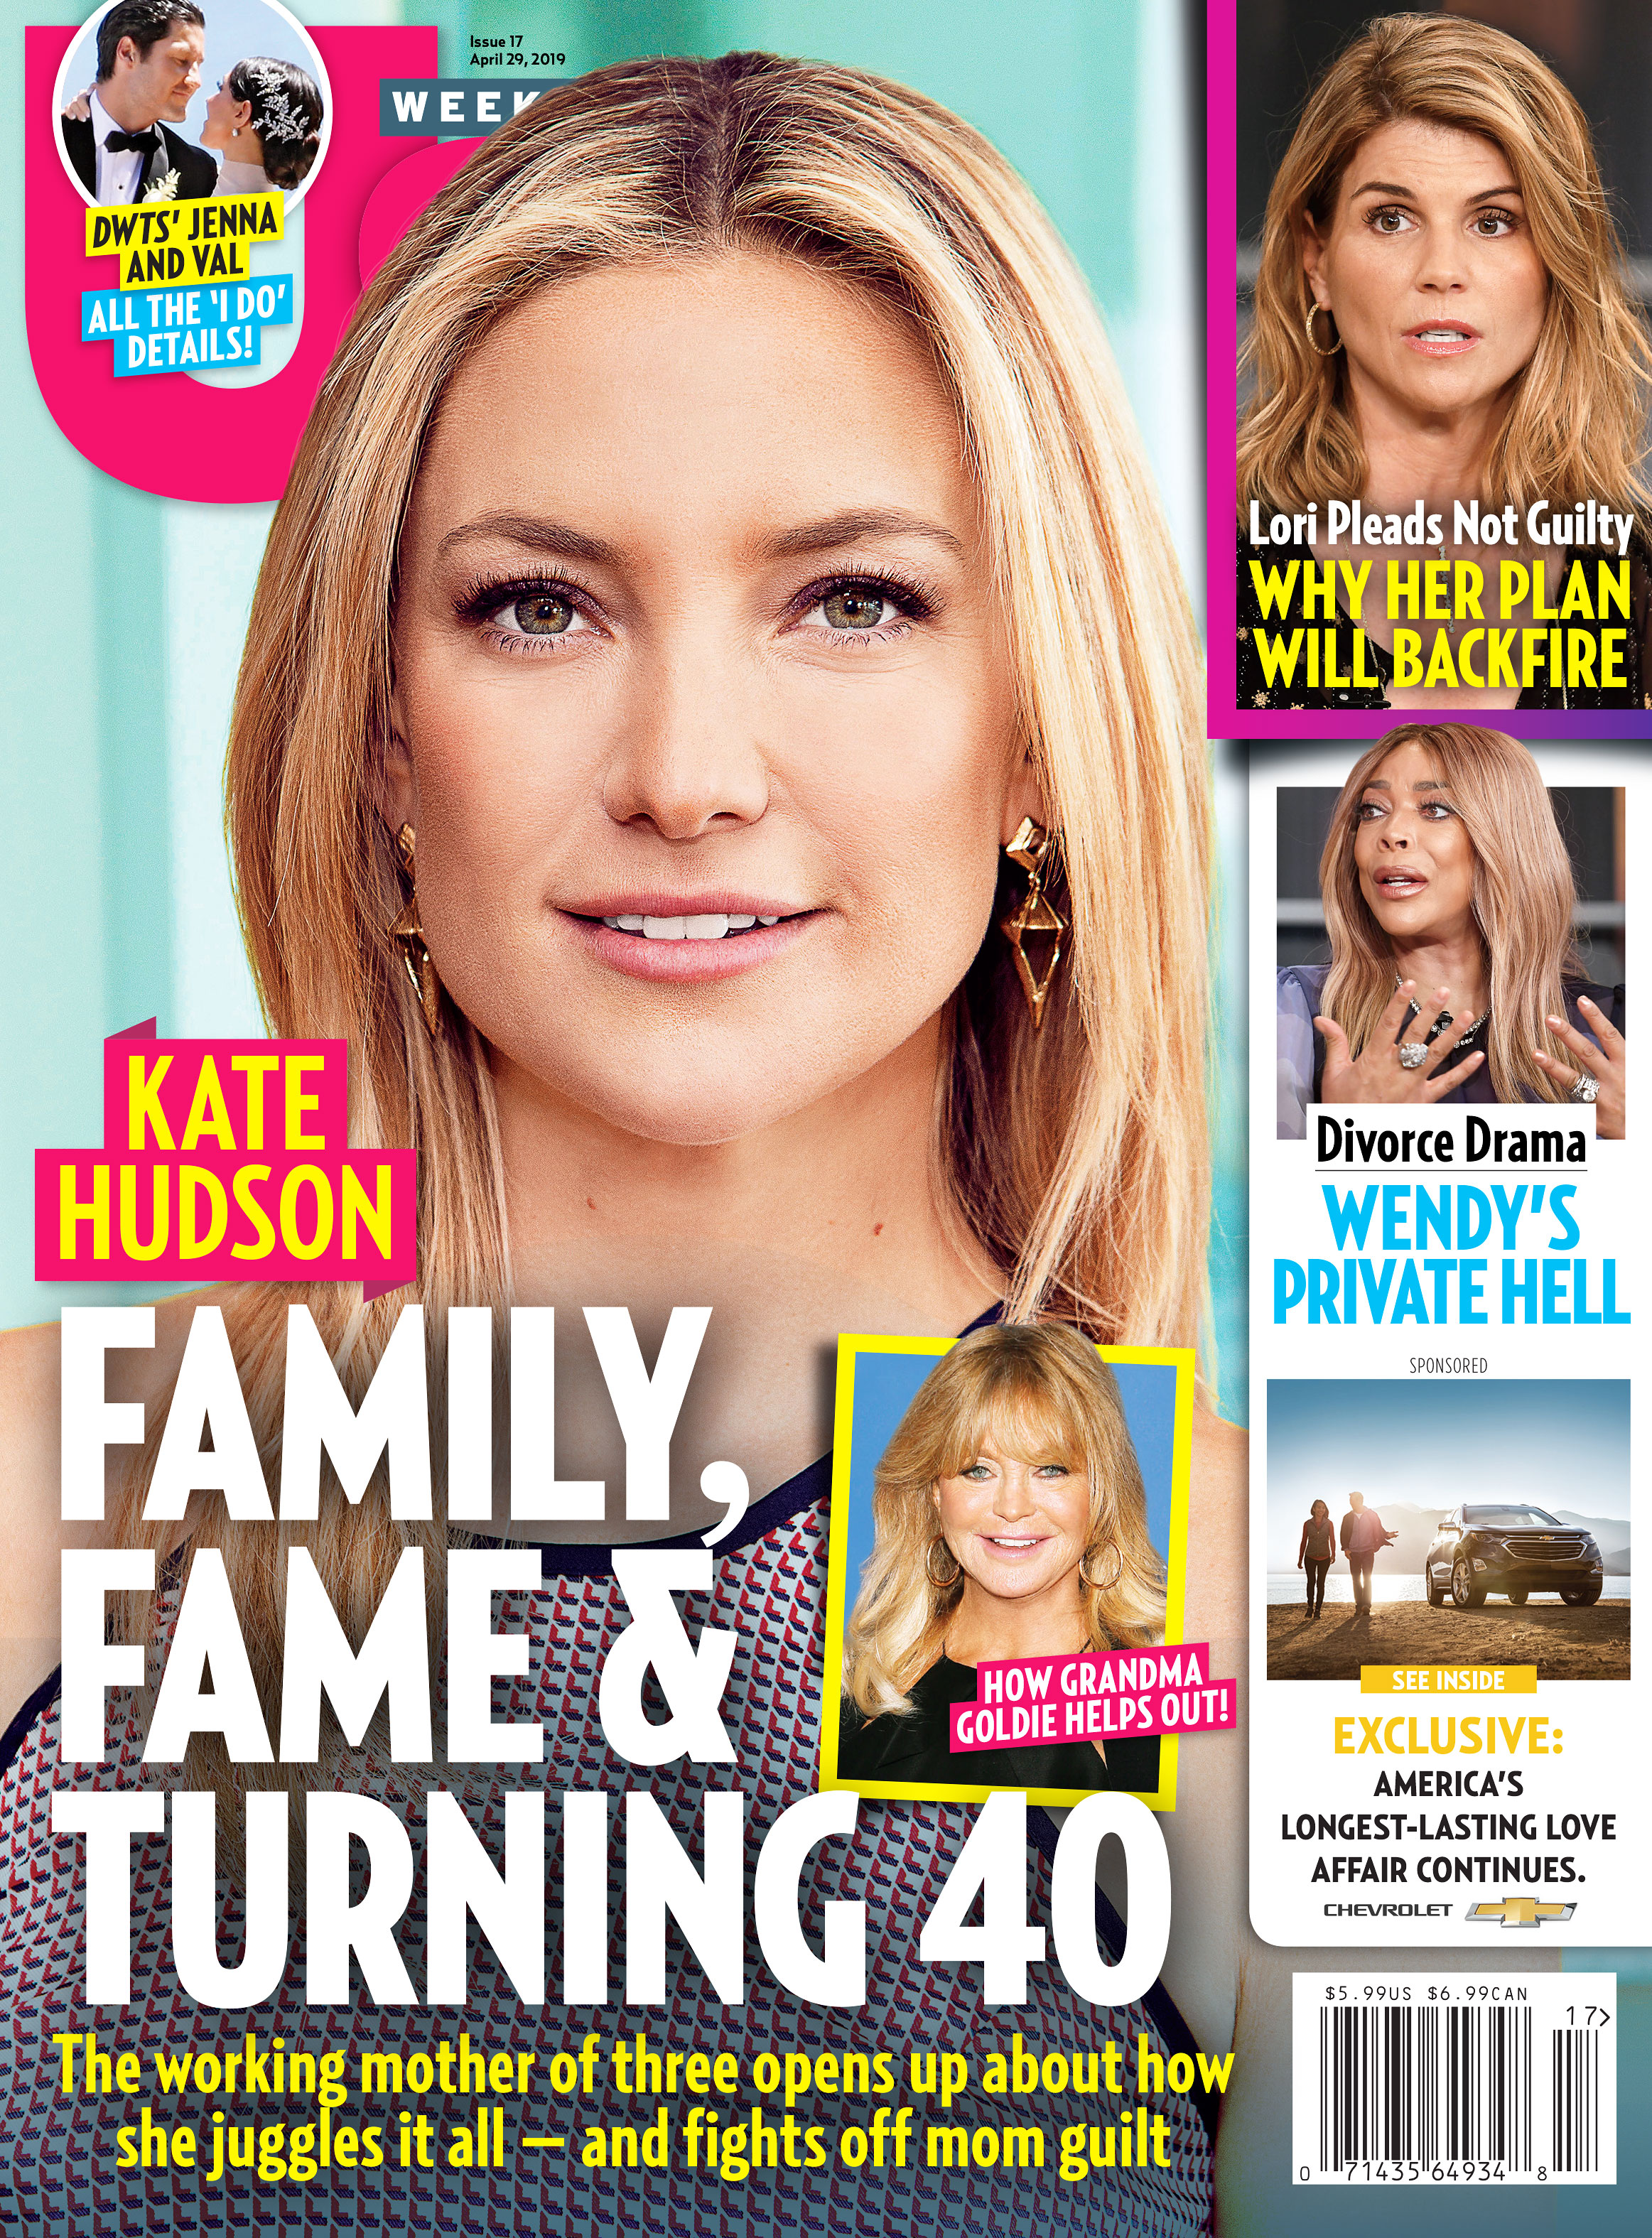 Lori Loughlin Could Spend Years Behind Bars Us Weekly Cover Kate Hudson 1719 - Us Weekly Cover Kate Hudson 1719